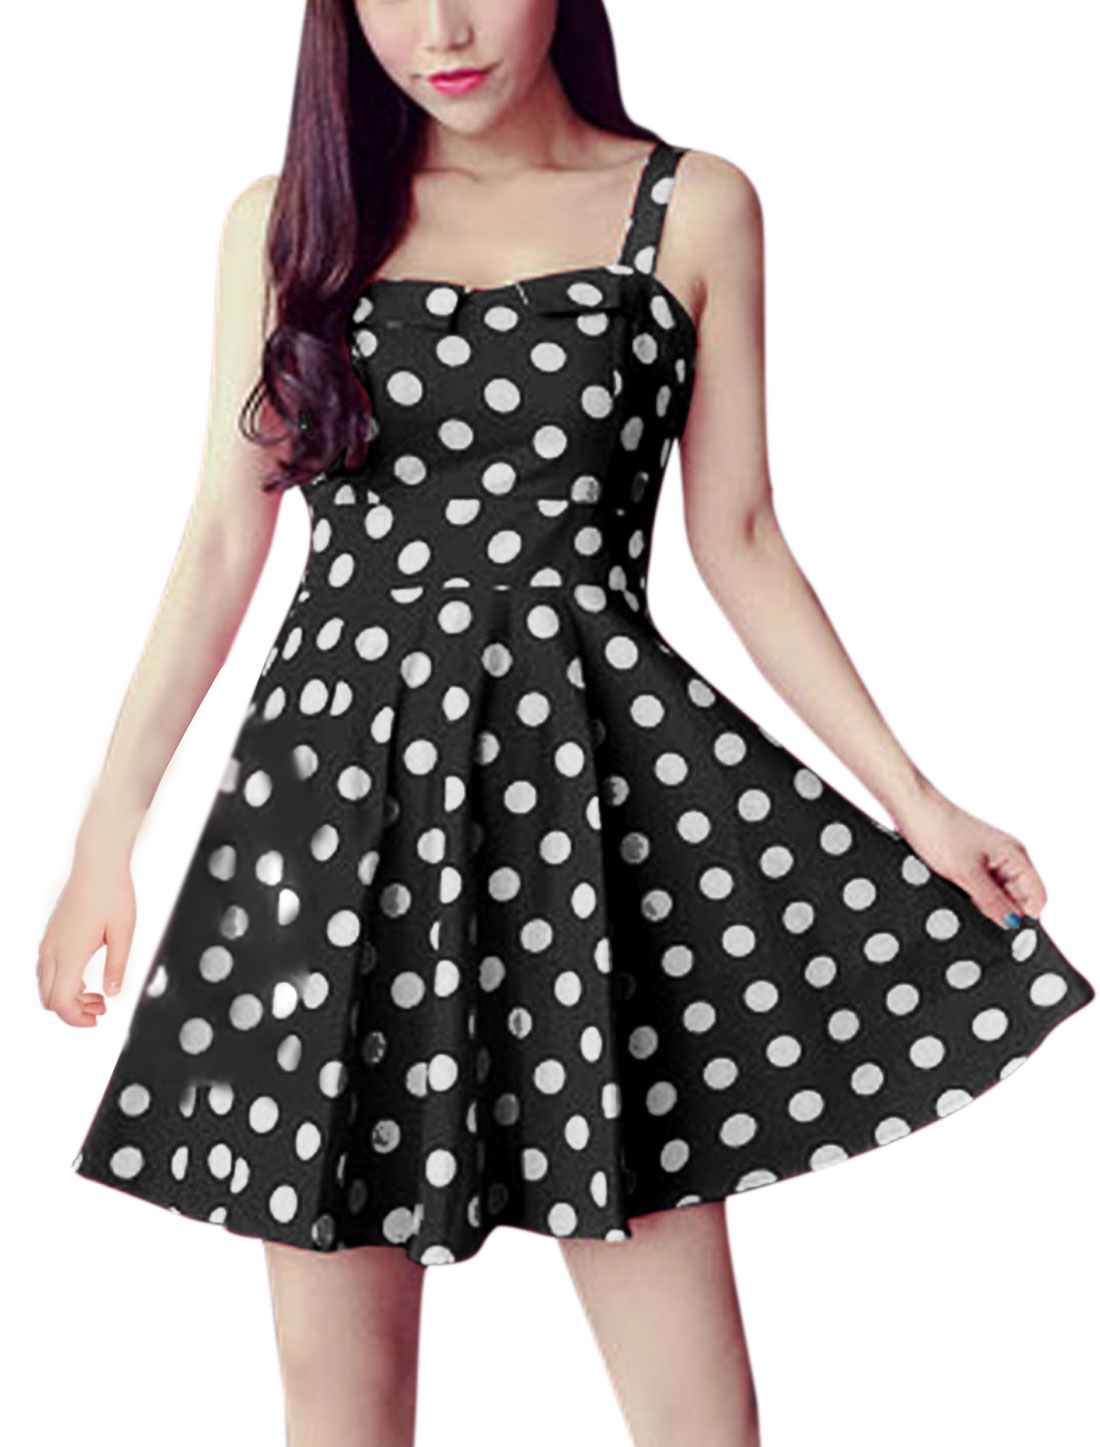 Woman Polka Dots Prints Square Neckline Sleeveless A Line Dress Black XS